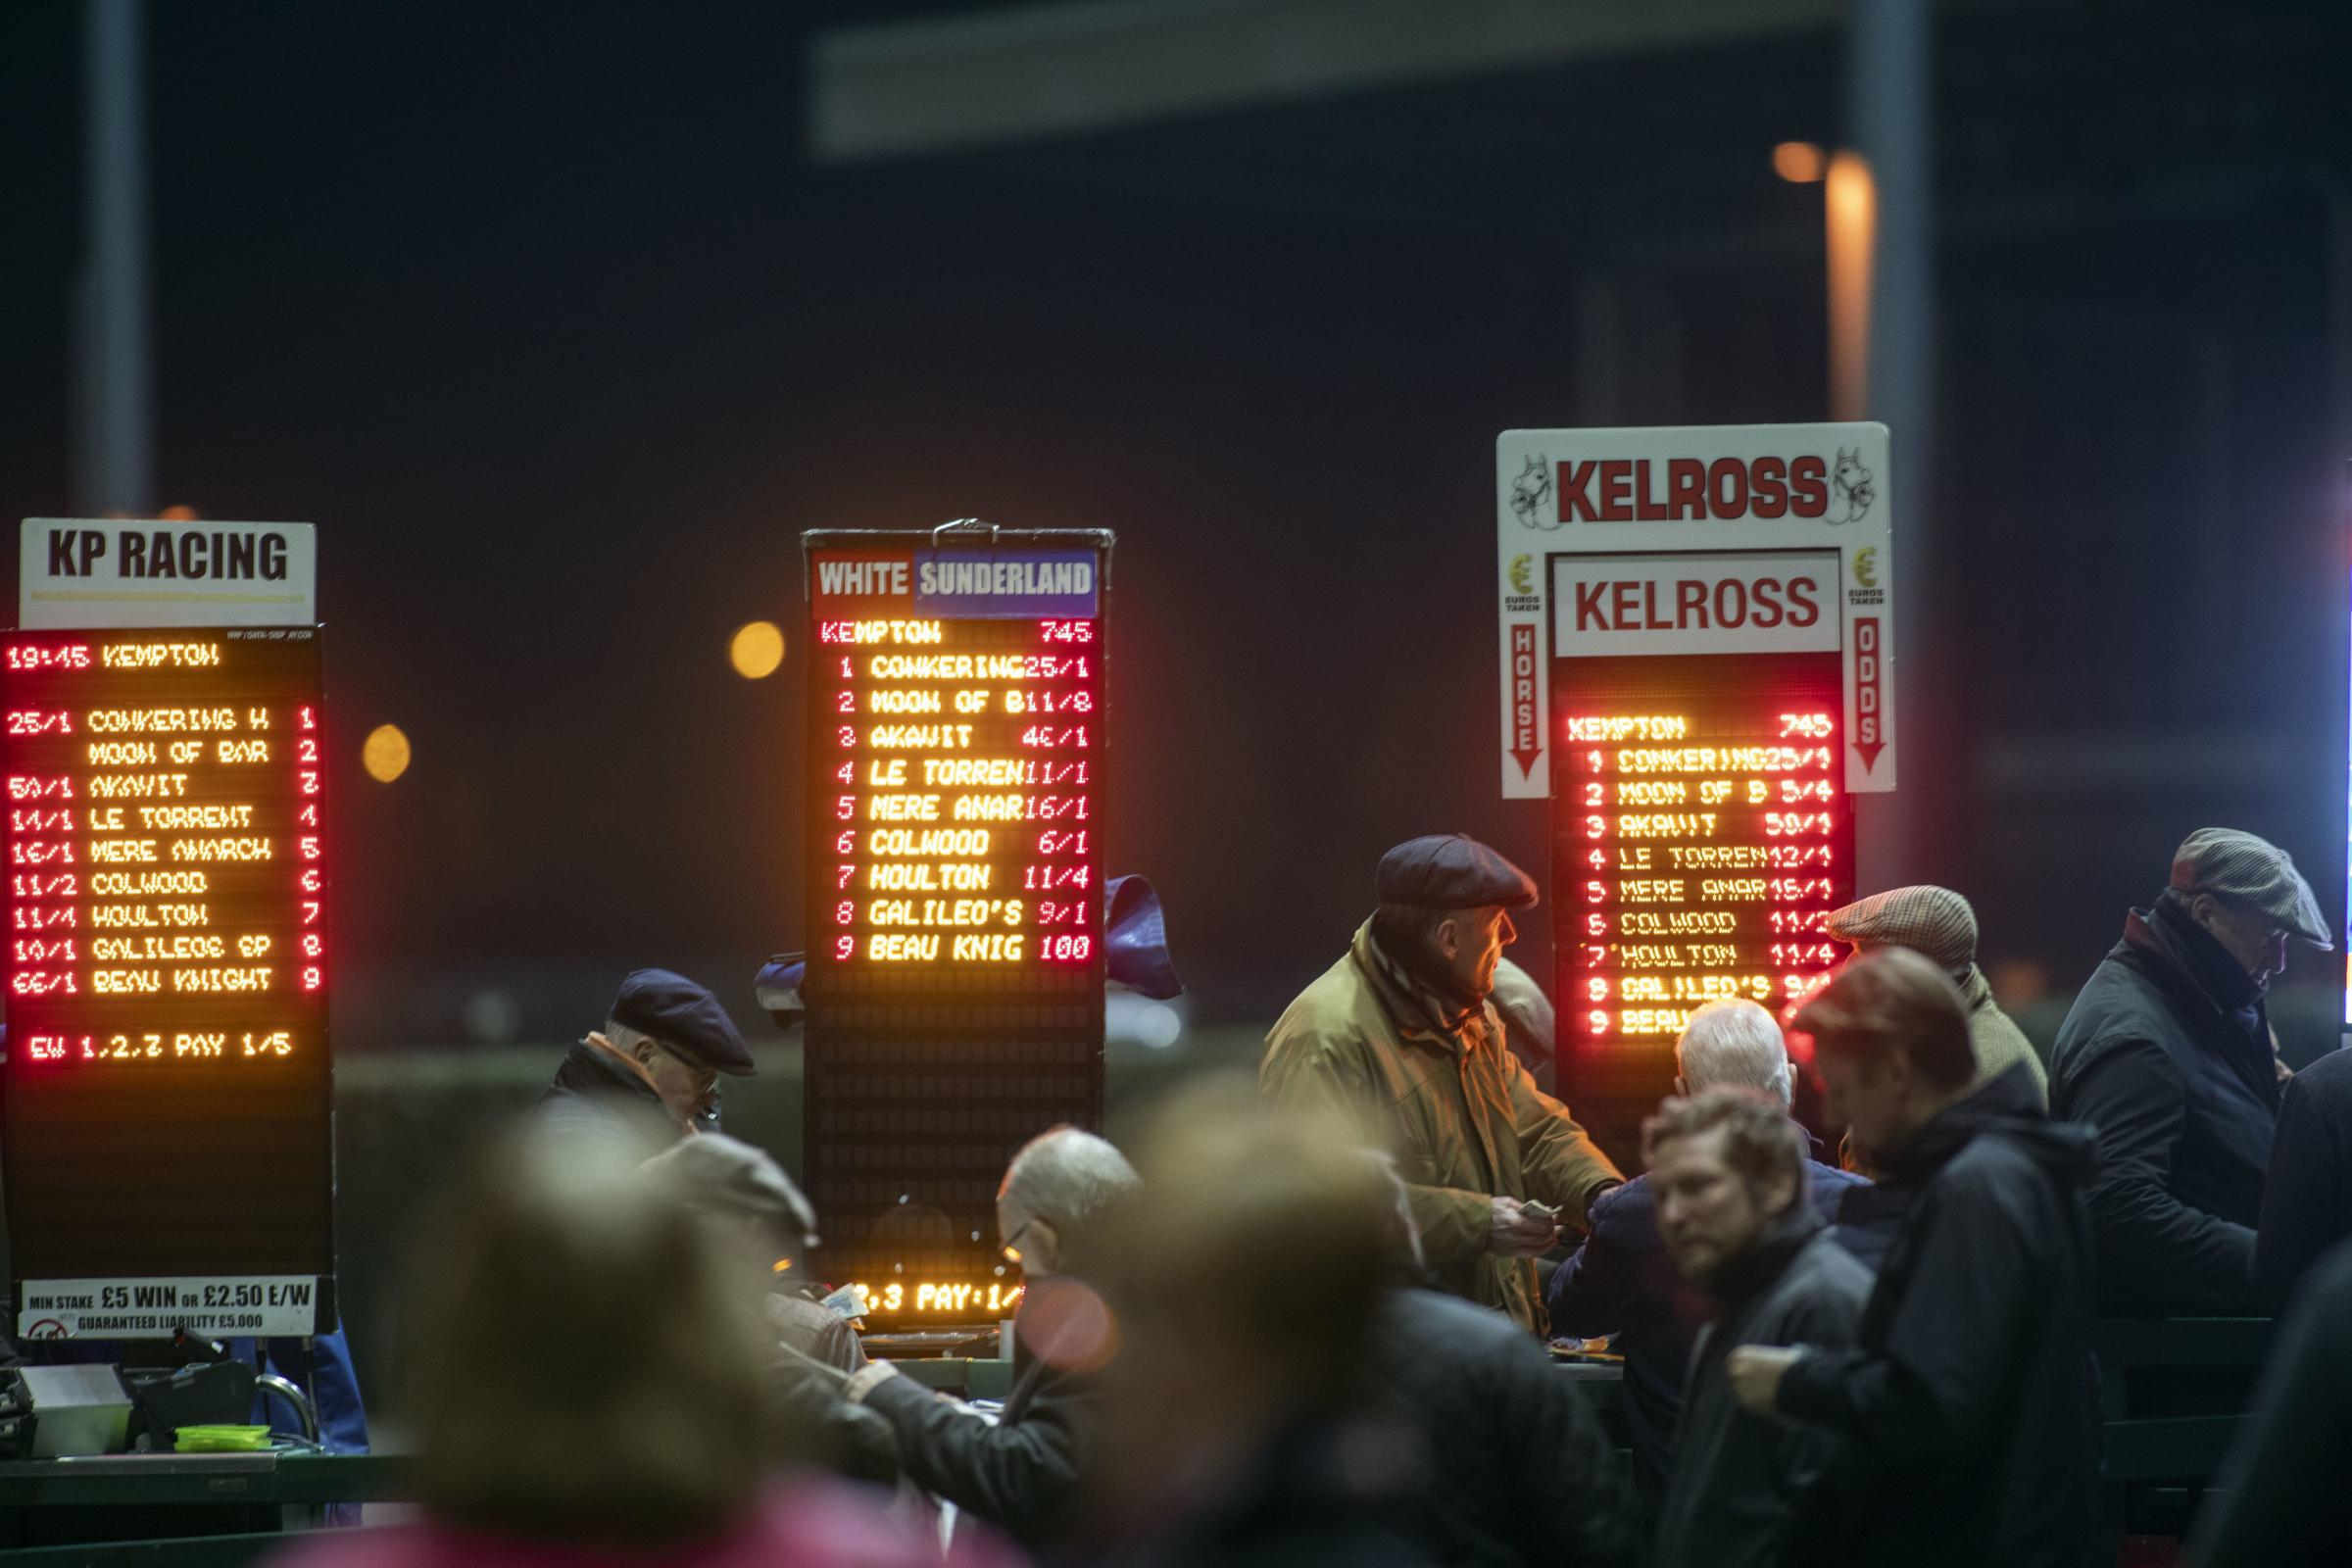 Spectators bet at Kempton Park Racecourse, Esher. PRESS ASSOCIATION Photo. Picture date: Wednesday February 13, 2019. See PA story RACING Kempton. Photo credit should read: Steve Parsons/PA Wire.